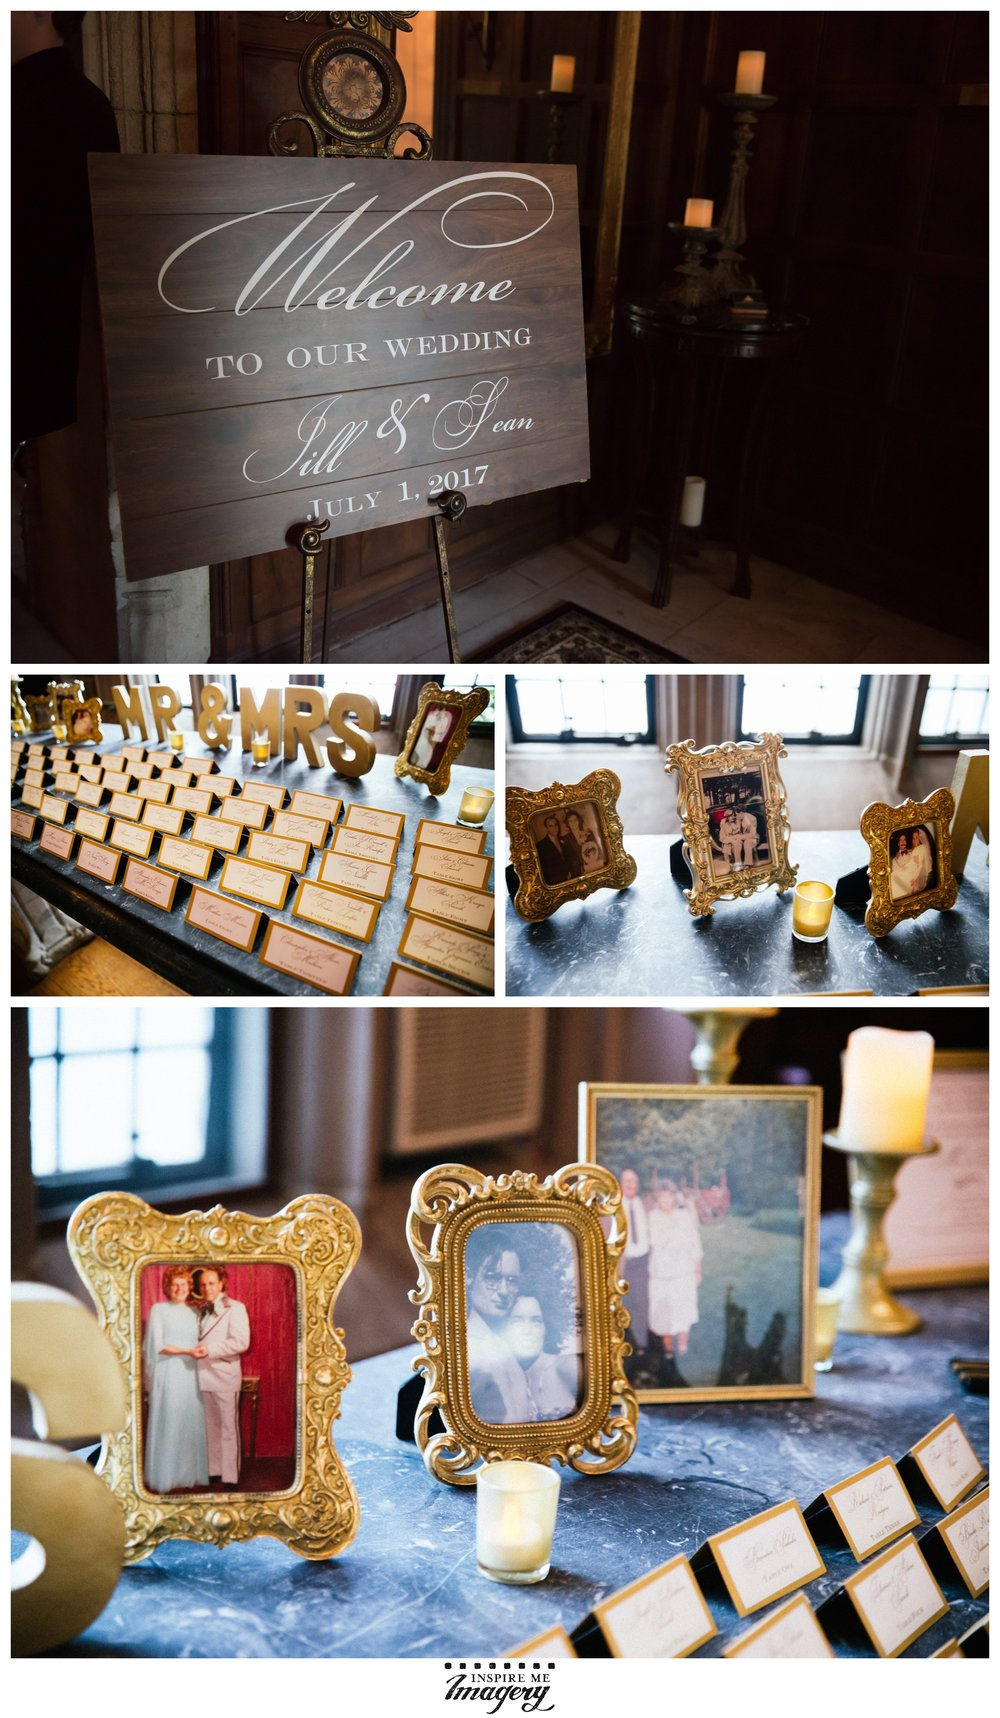 We love when couples incorporate photographs in their decor. It shows the importance of photography at times like this, and honors the people in the picture frames so beautifully.